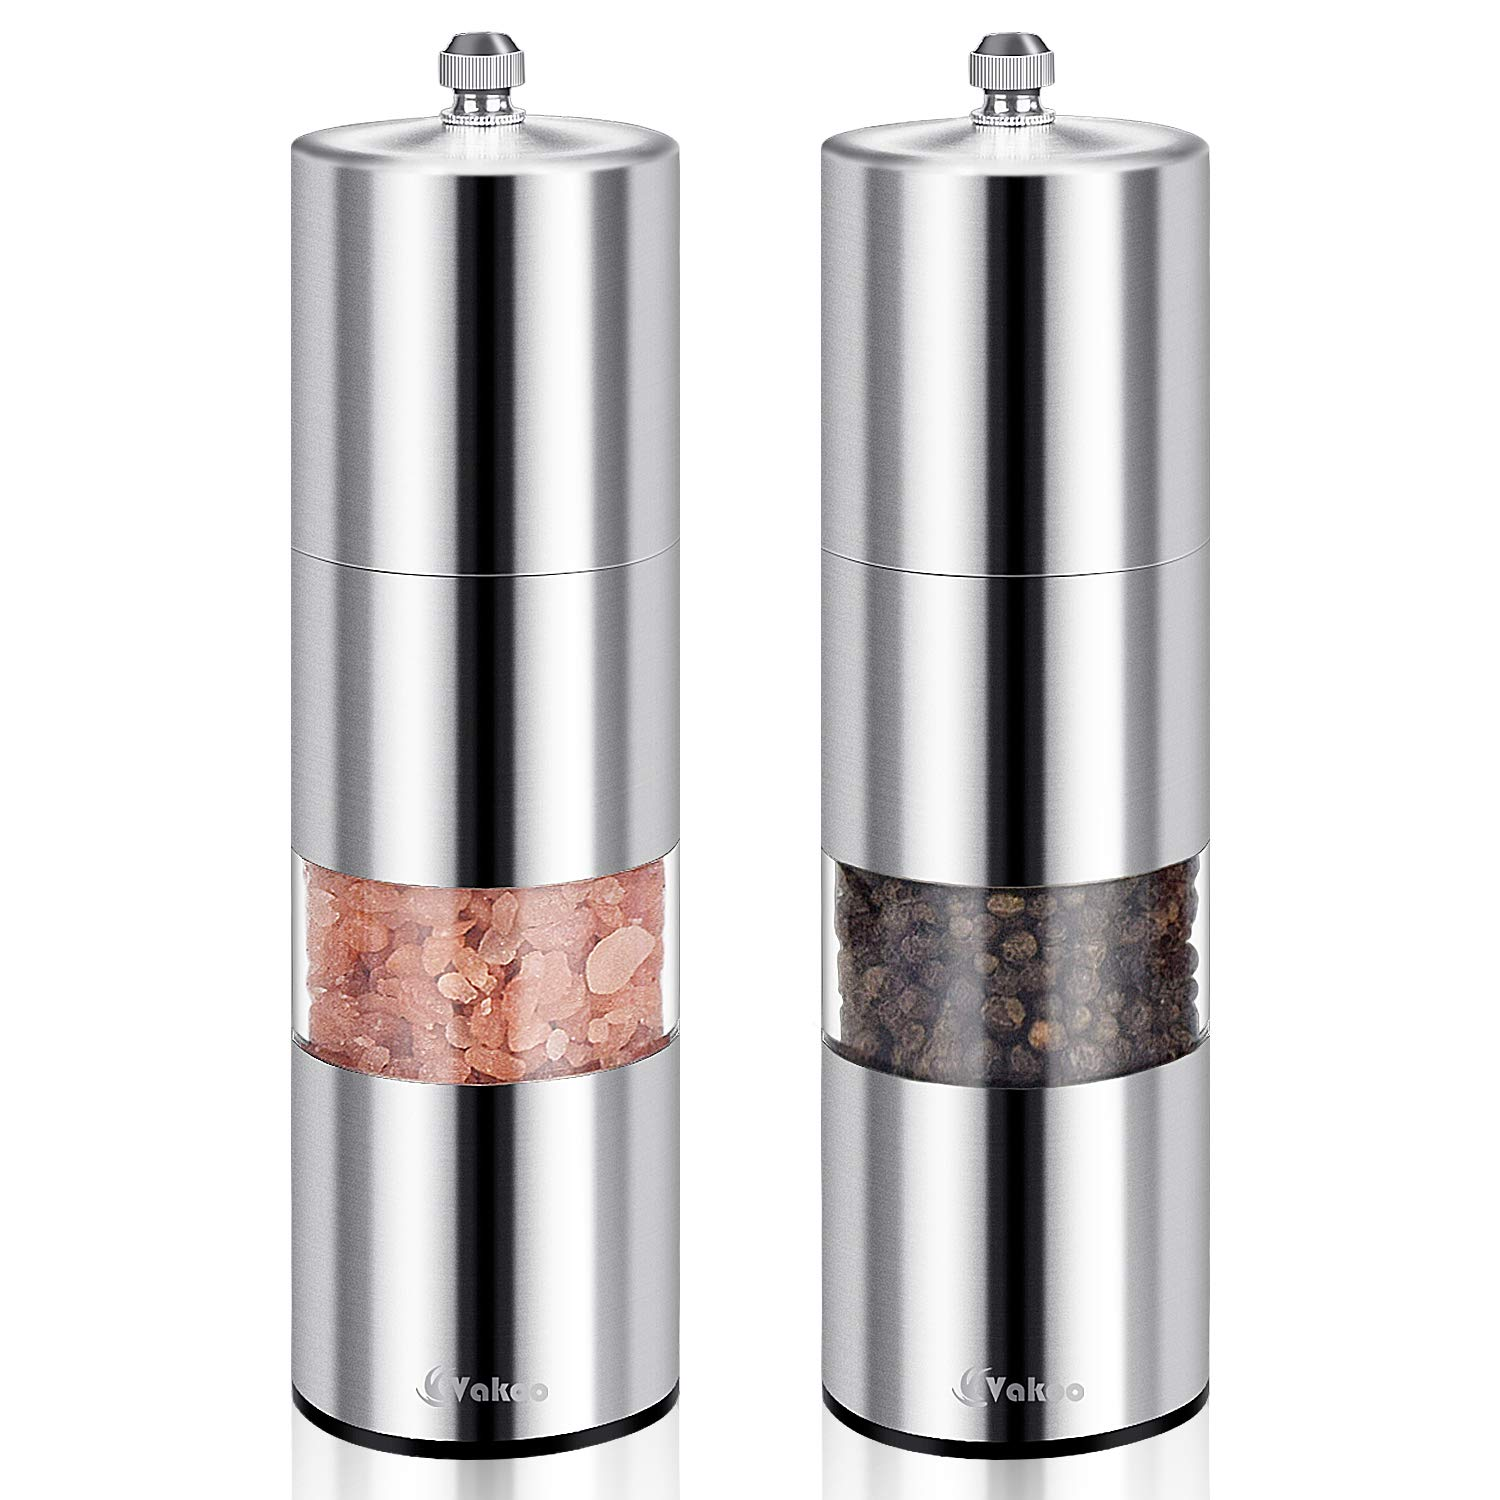 Salt and Pepper Grinders Set of 2, Vakoo Manual Stainless Steel Pepper Mill and Salt Shakers with Adjustable Ceramic Rotor and Visible Window